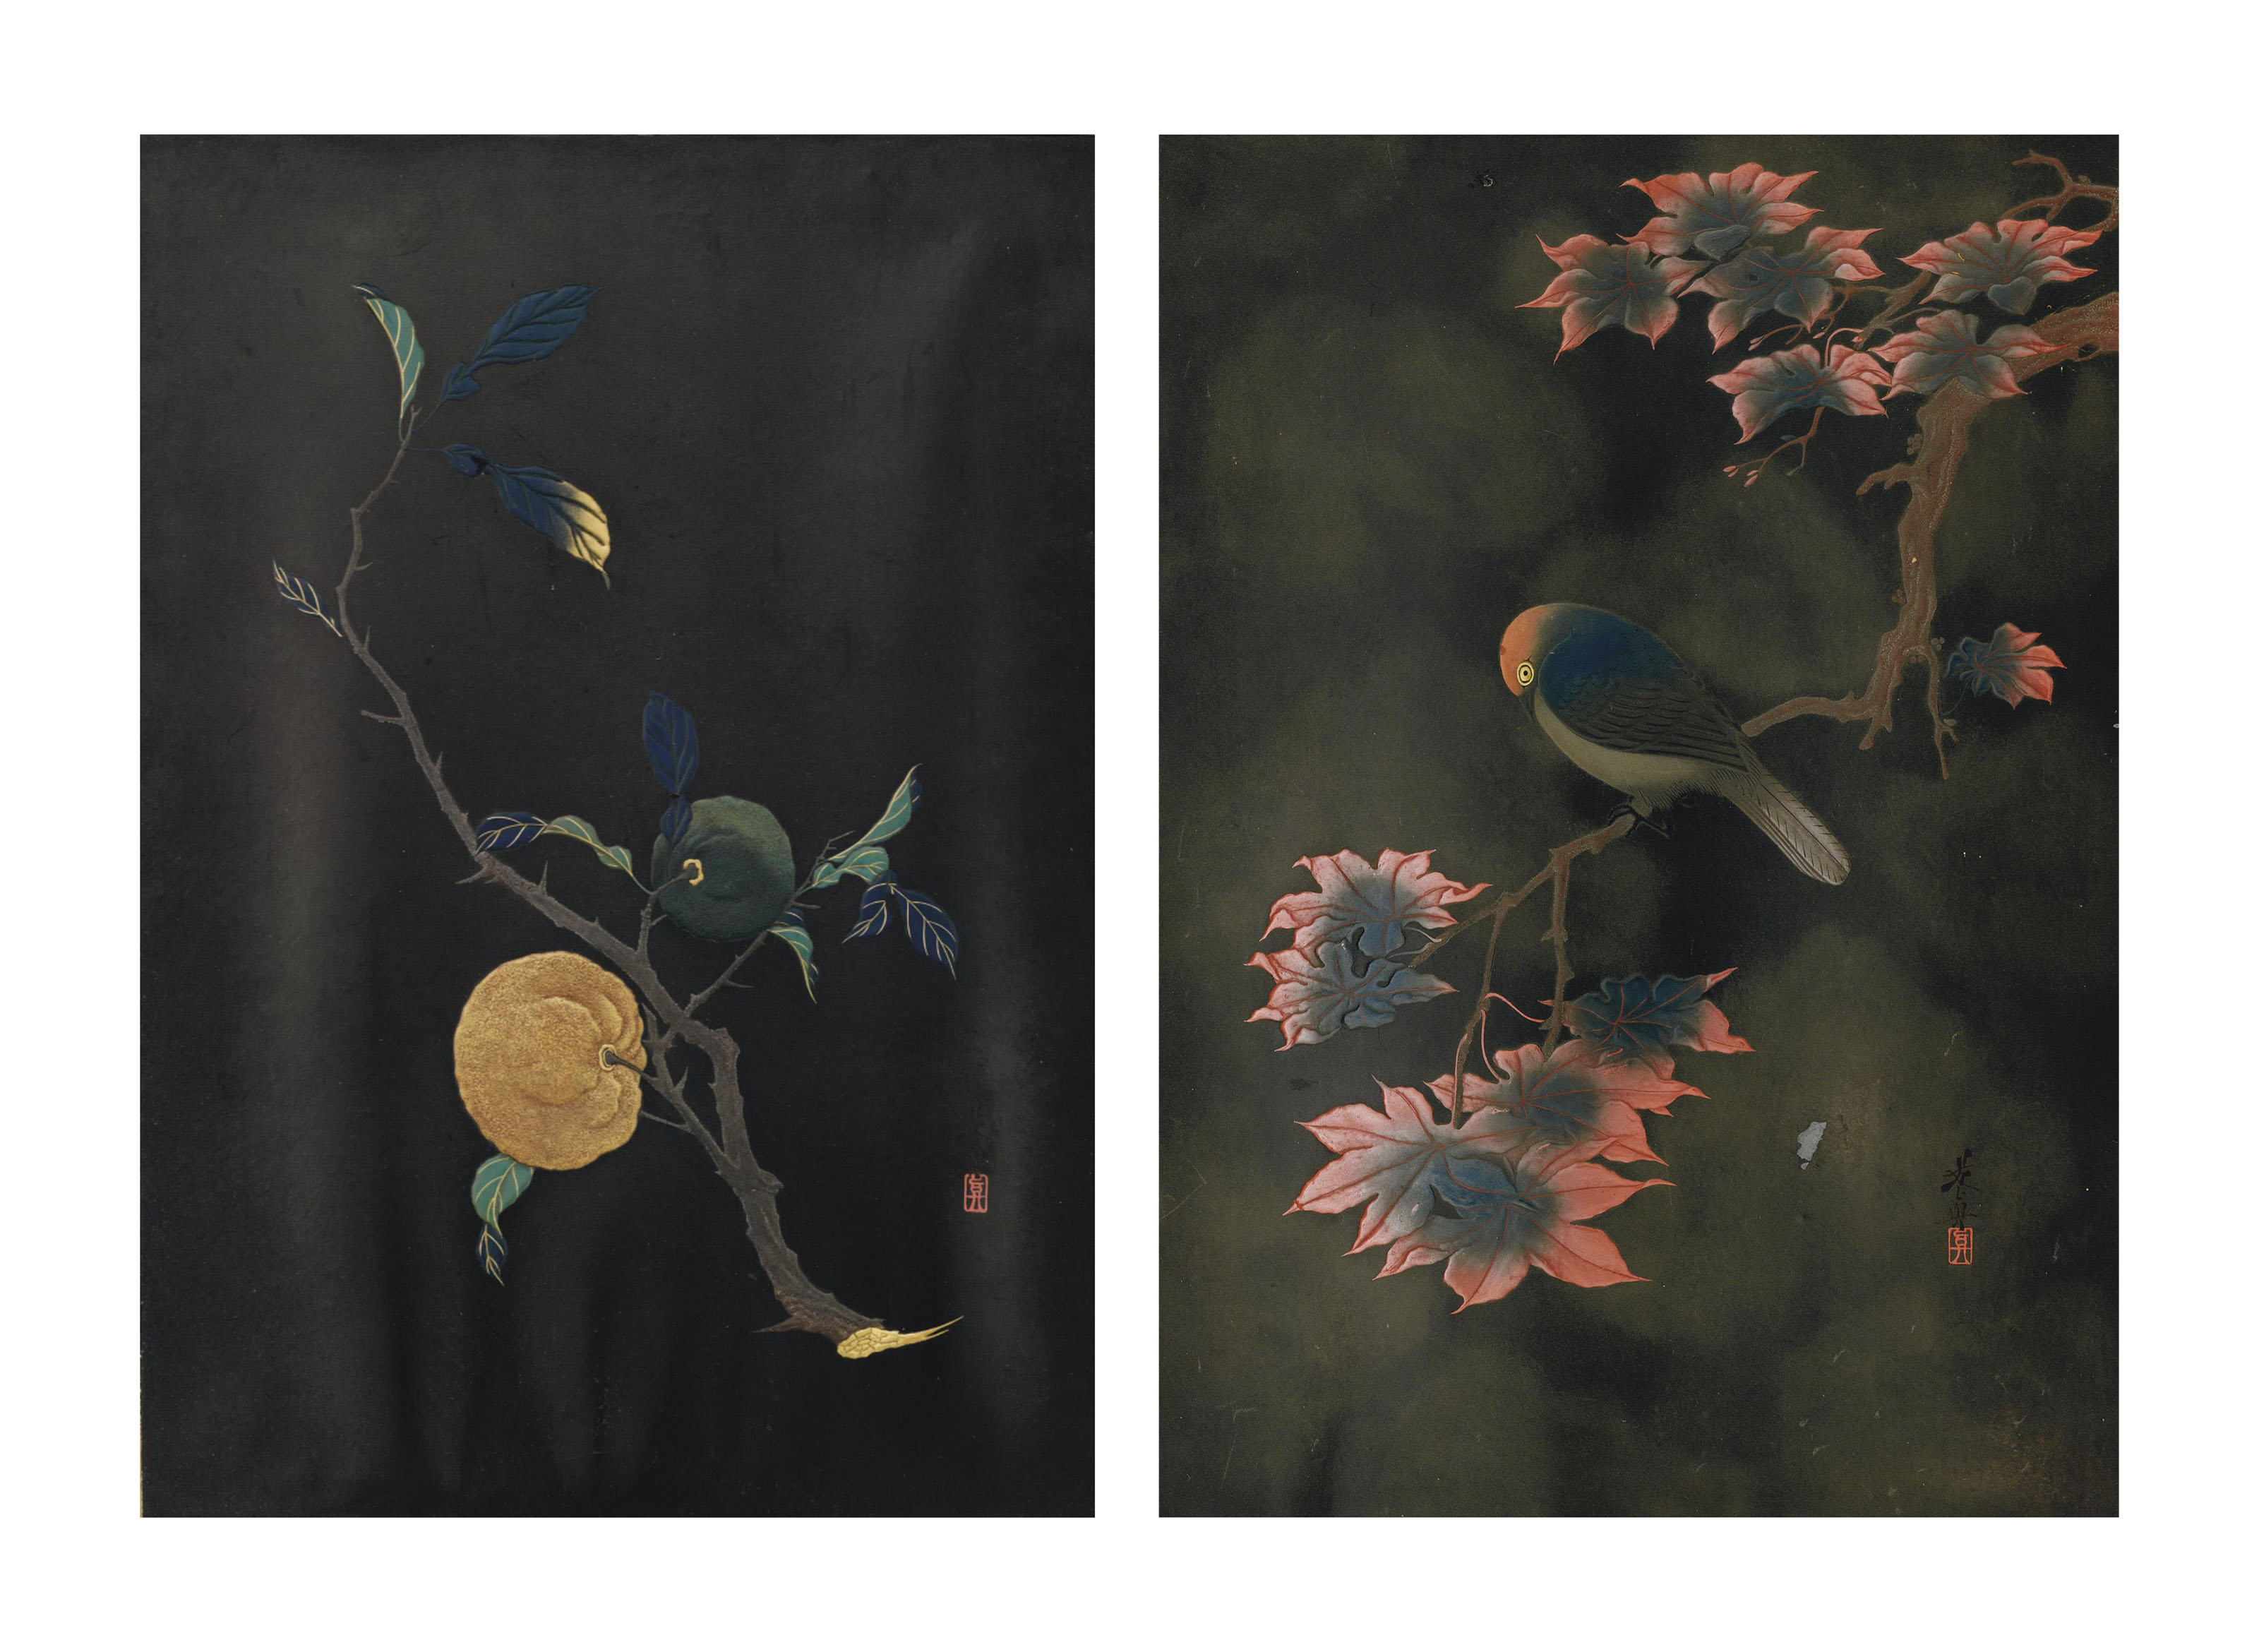 A pair of lacquer panels